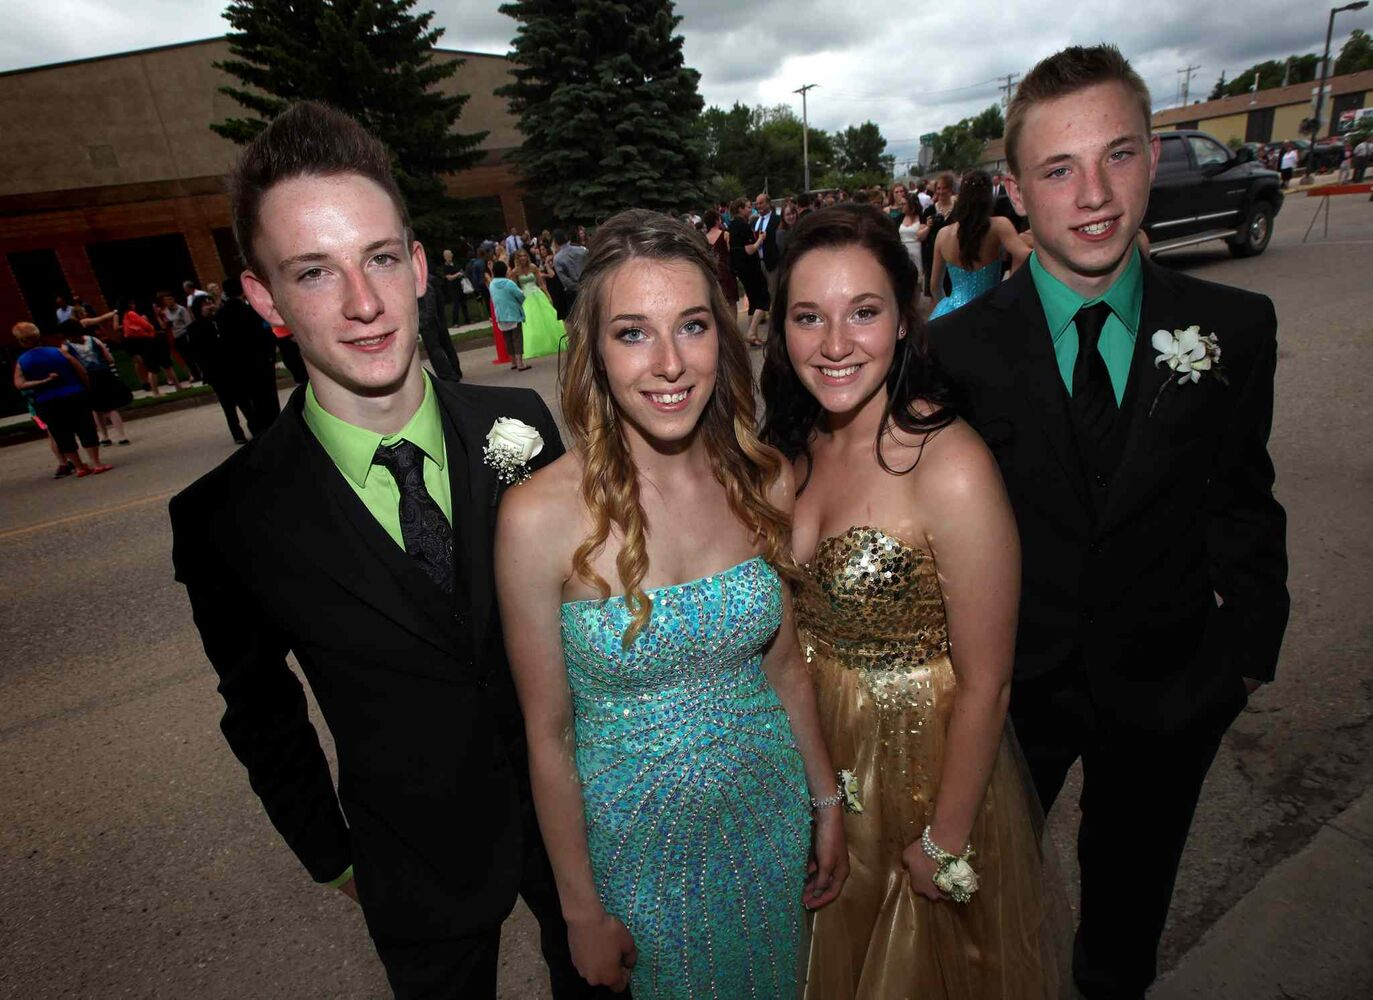 Lavich quadruplets, from left, Greg, Maryn, Janelle, and Myles were part of the graduation procession on Carberry's main street Wednesday. (Phil Hossack / Winnipeg Free Press)